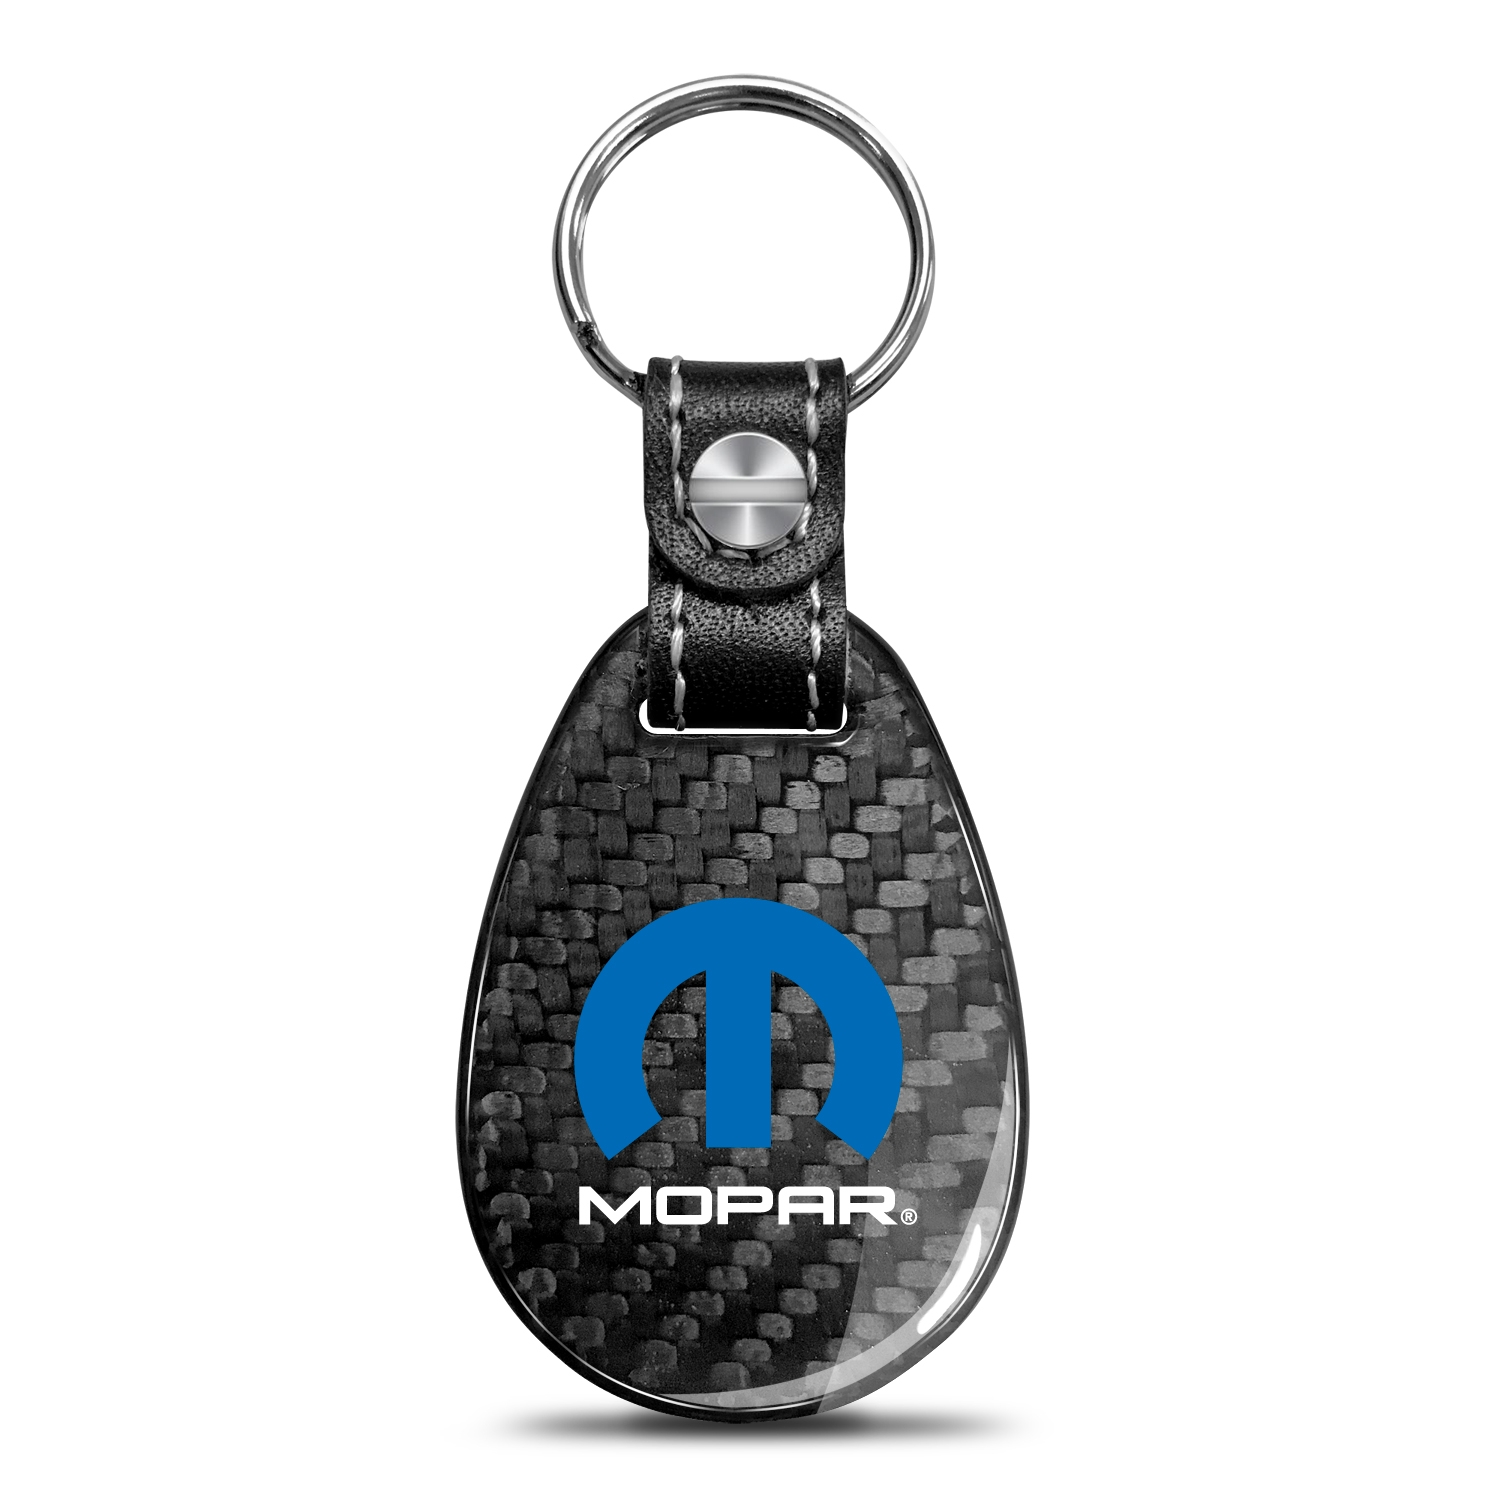 Mopar Real Carbon Fiber Large Tear-Drop Key Chain